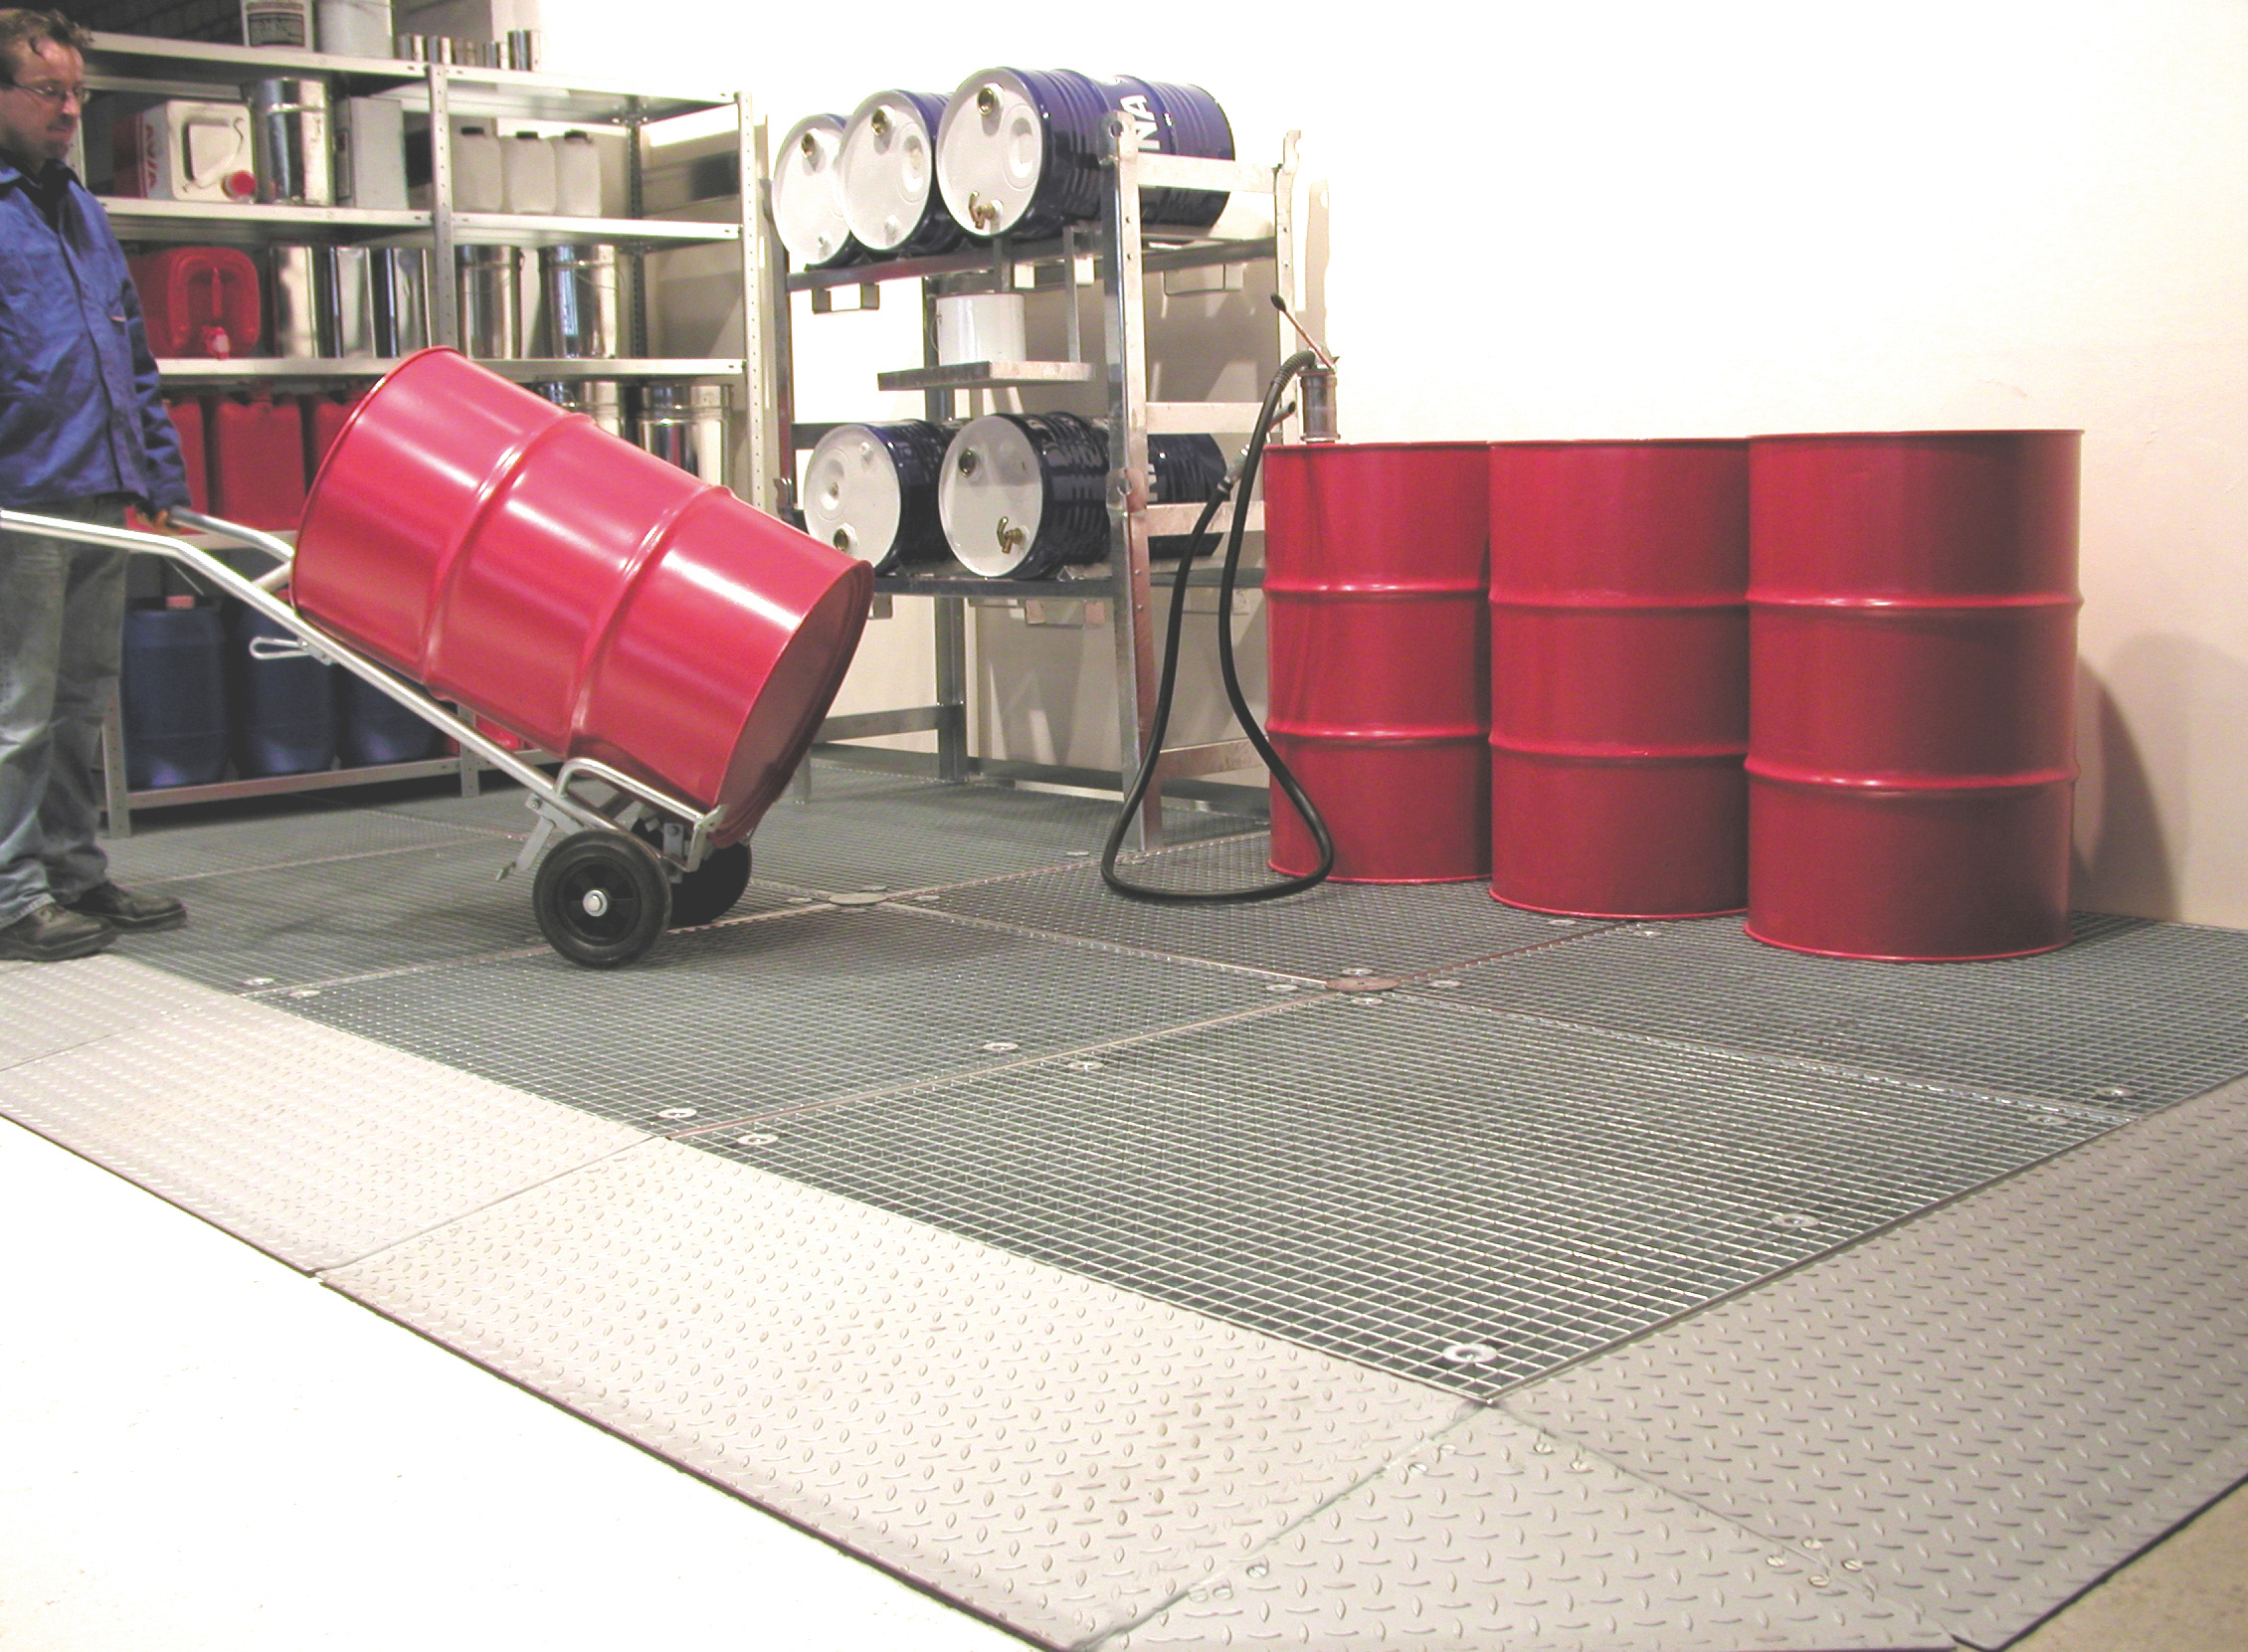 Bauer Südlohn® BSW 21-24 Floor protection tub, with pallet trucks or forklifts passable